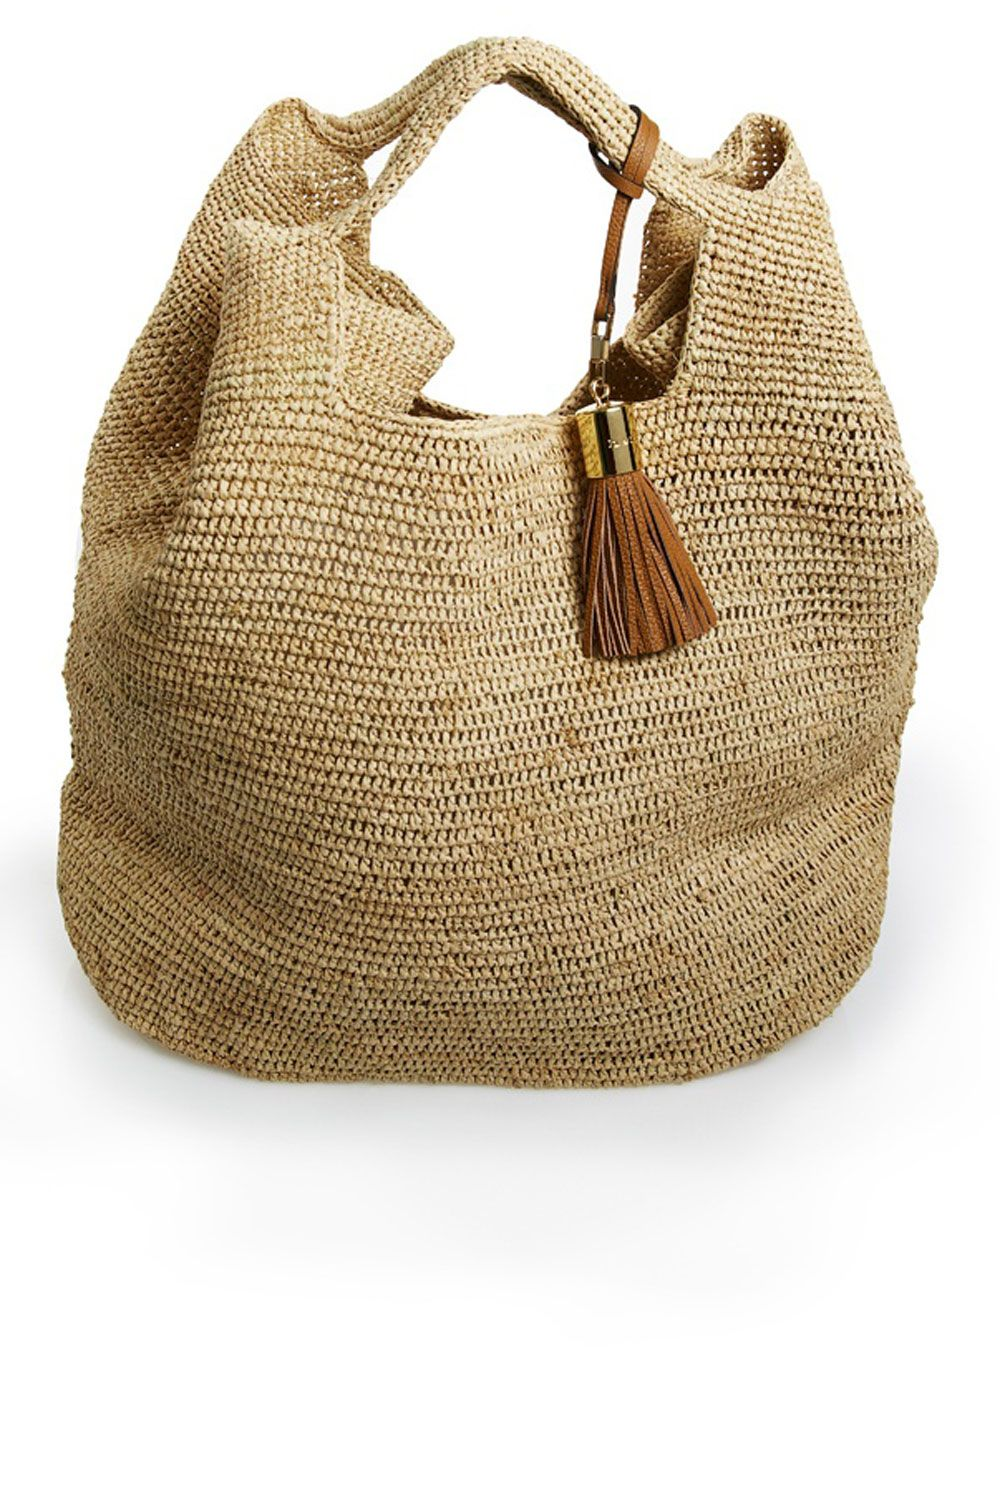 12 Chic Carry-Everything Beach Bags For That Summer Vacay | Heidi ...